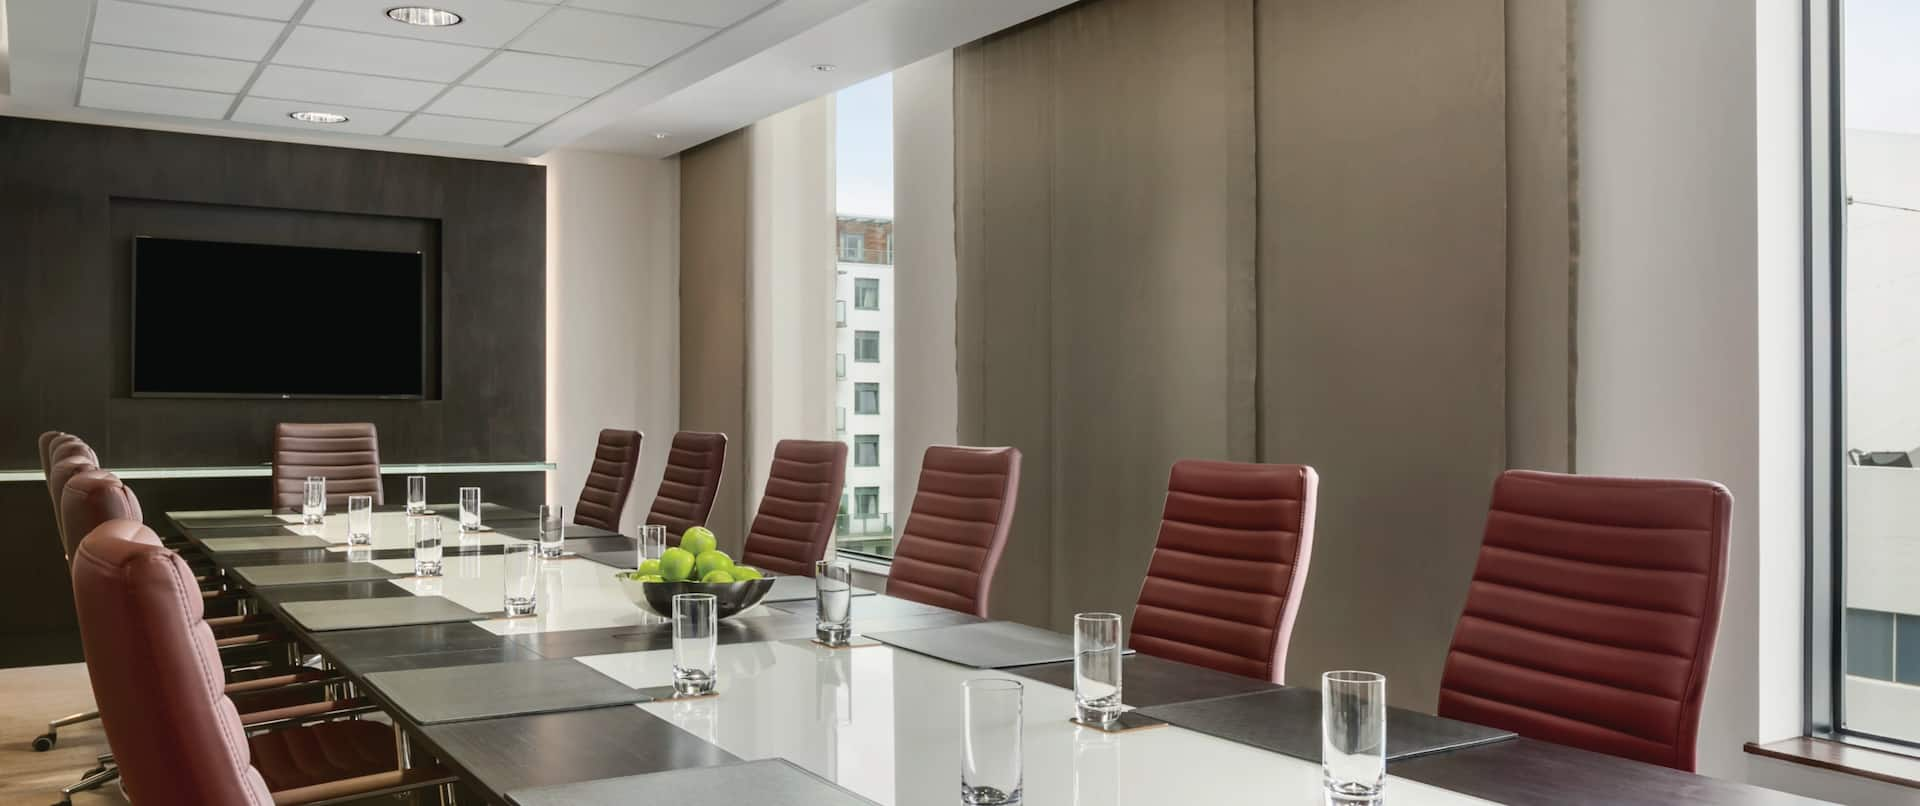 Boardroom With Conference Table